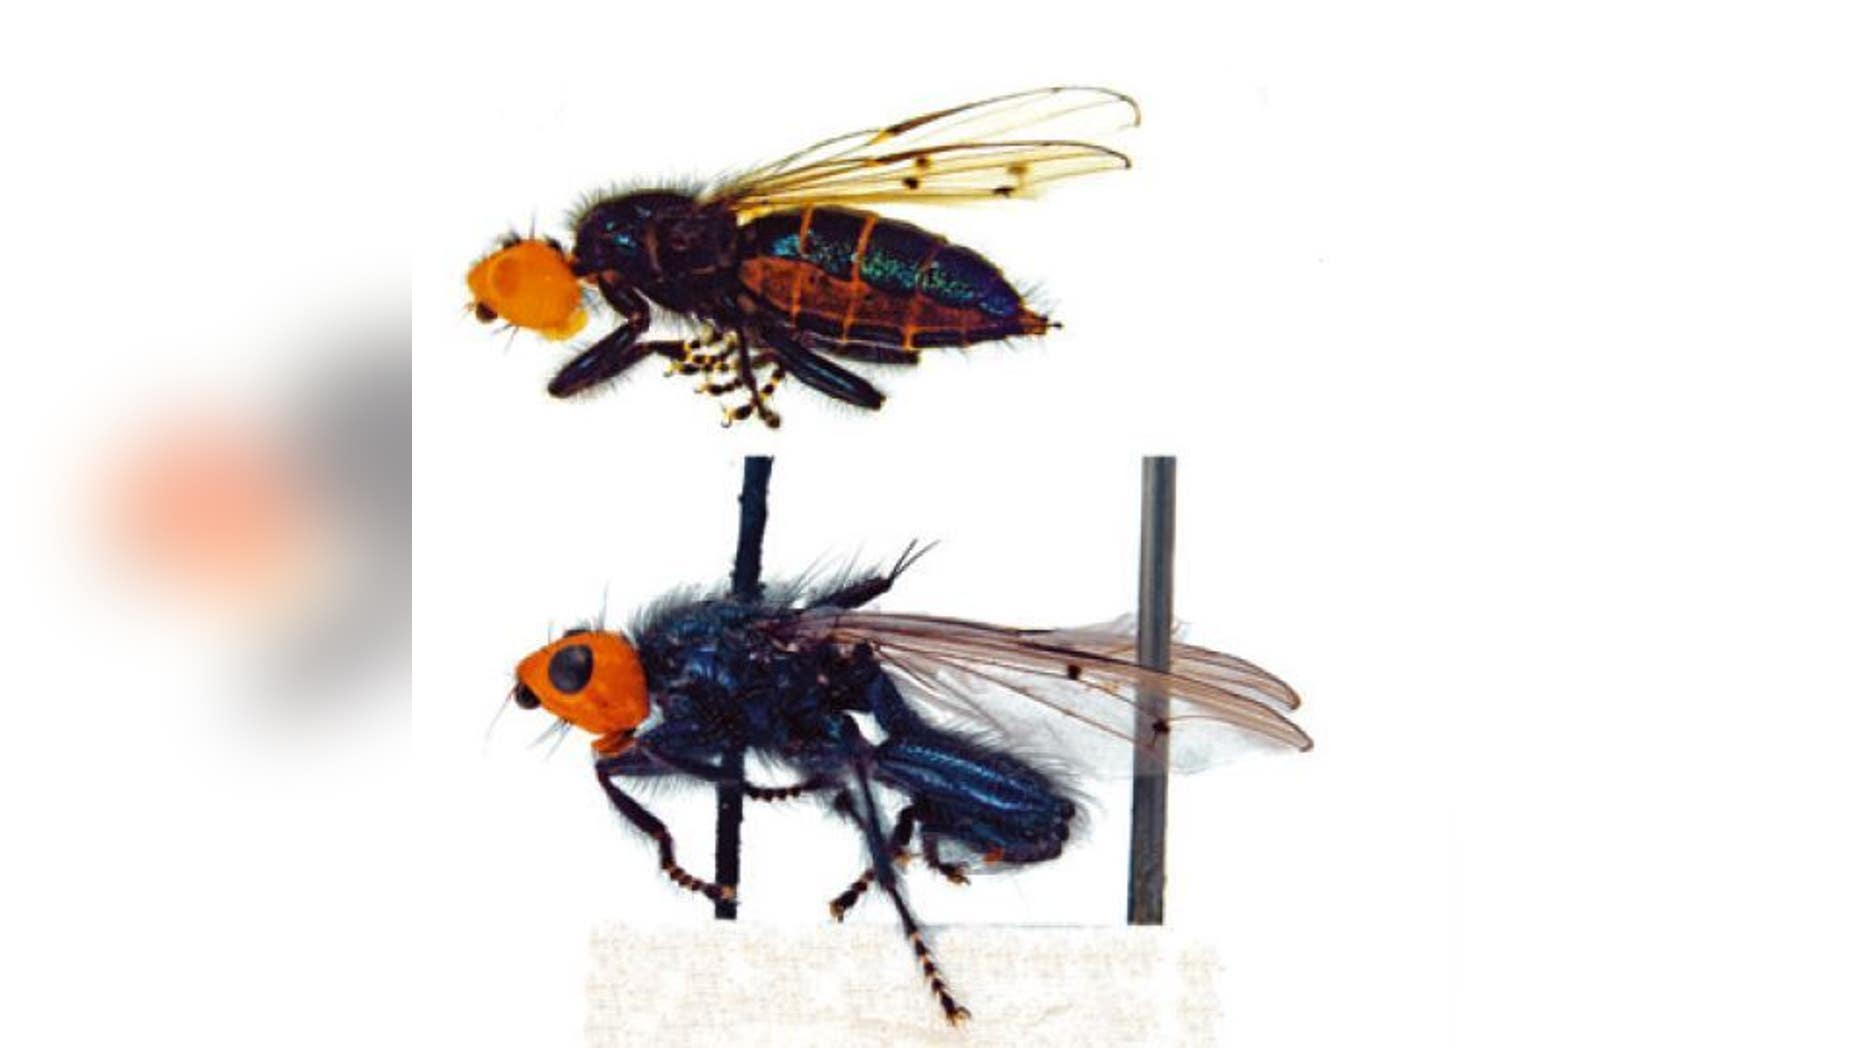 A species of bone-skipper, Thyreophora cynophila, which was first discovered in Mannheim, Germany, in 1798. They had been thought to be extinct for about 160 years before being found again in Spain in 2010. Top: female fly. Bottom: male.